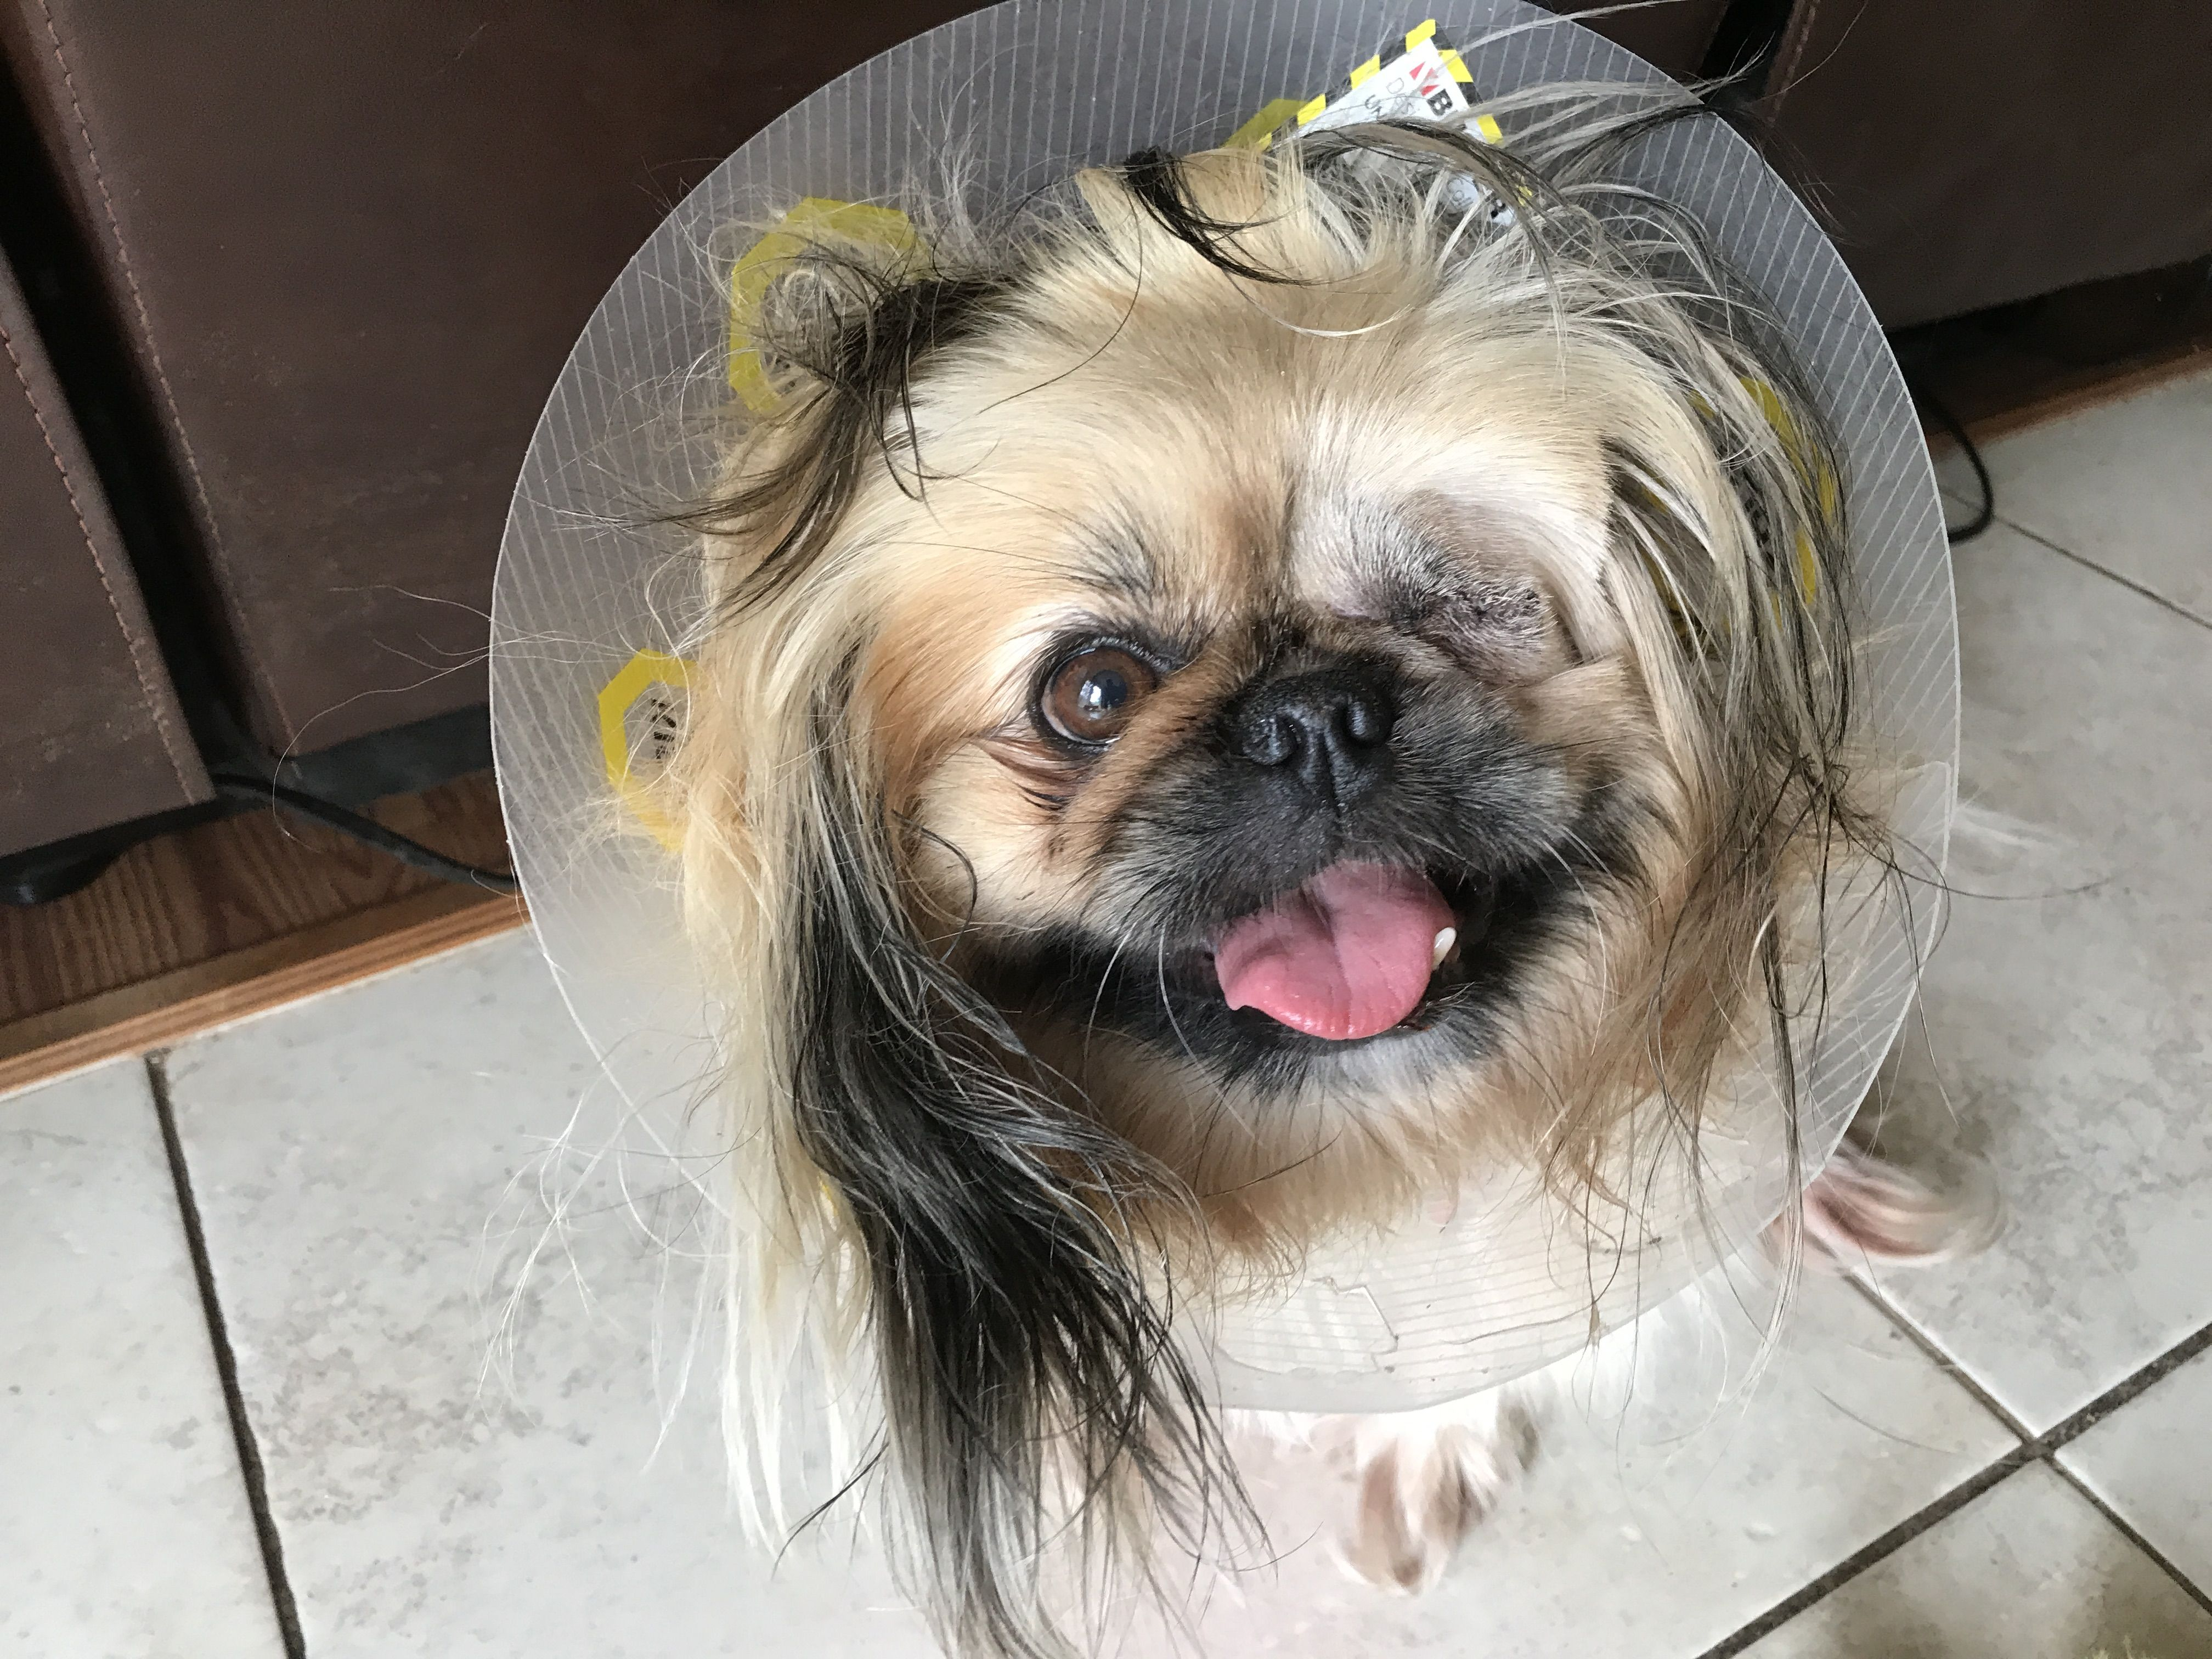 Precious About A Week After Having Her Eye Removed Pekingese